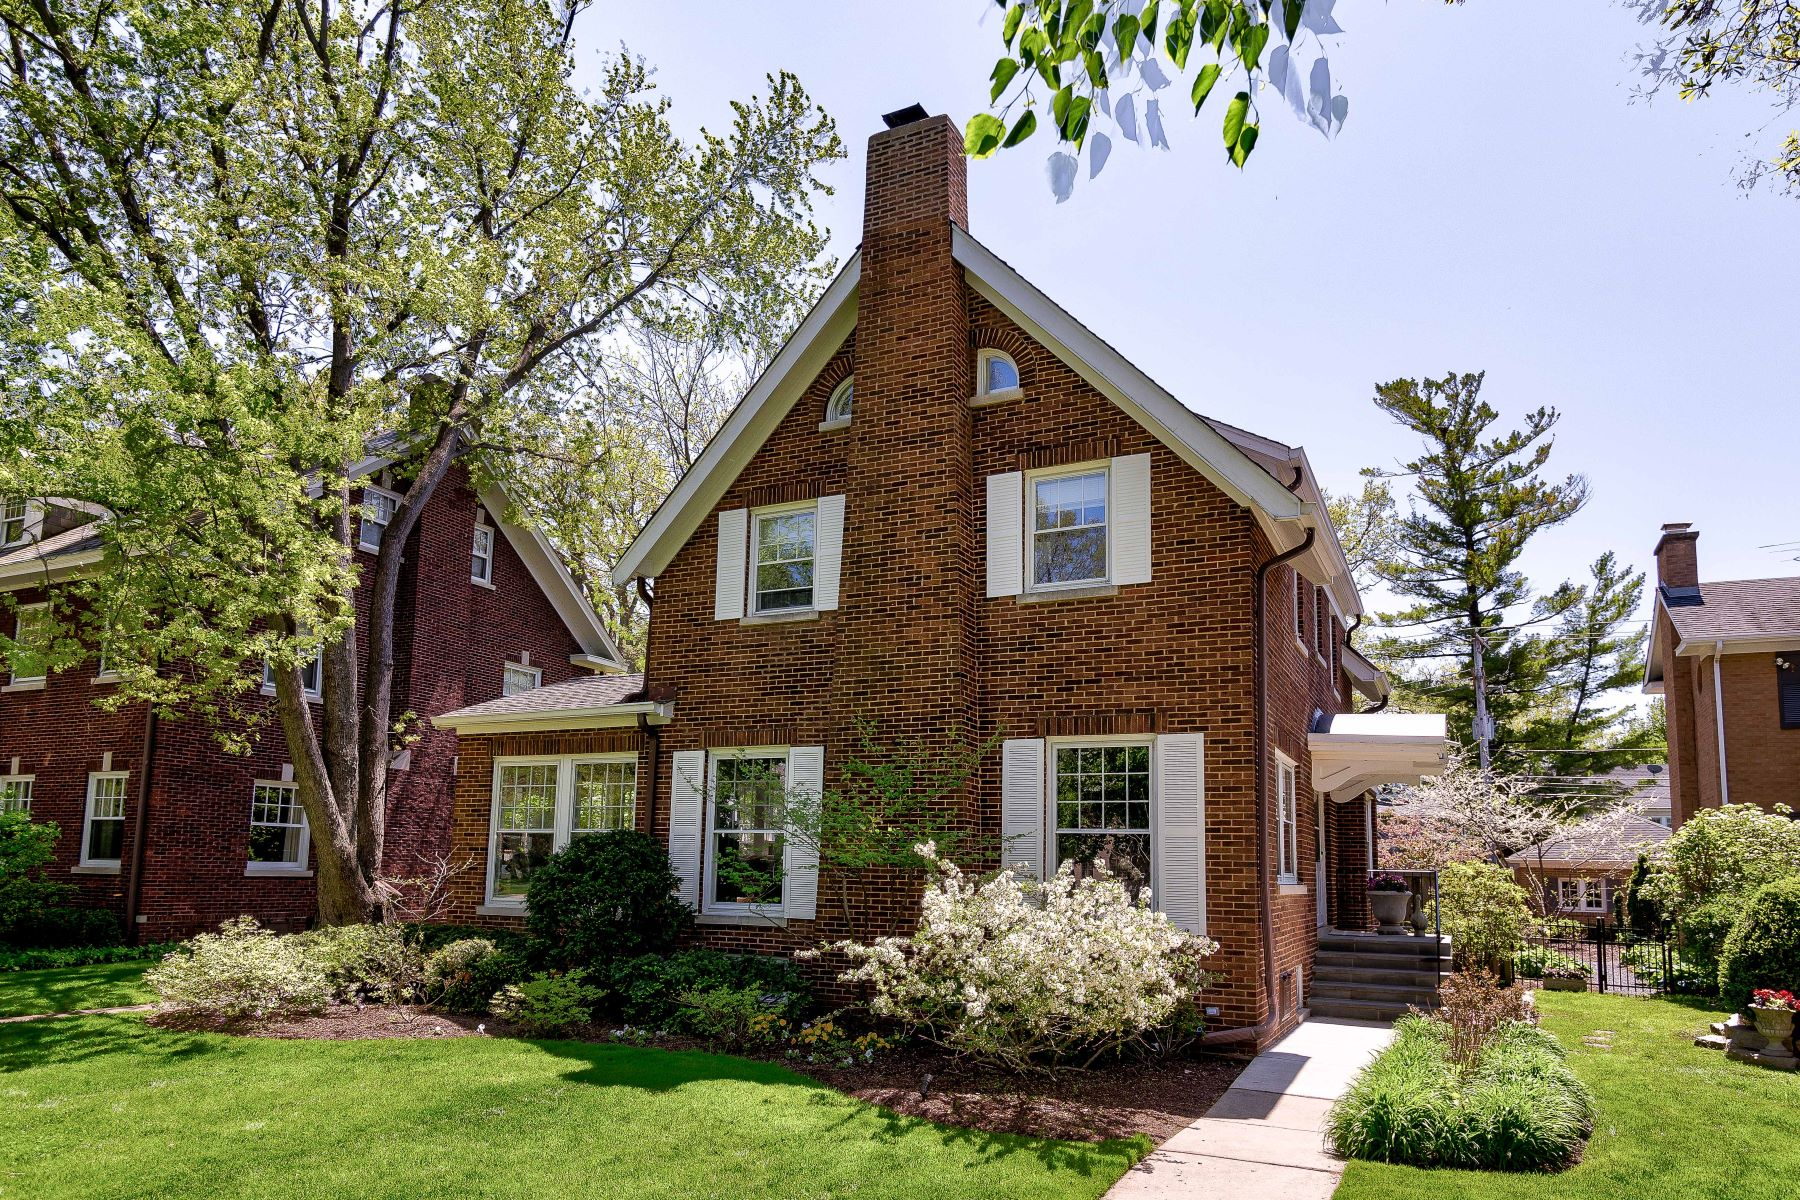 Single Family Homes for Active at Classic Red Brick Colonial 1025 Chestnut Avenue Wilmette, Illinois 60091 United States